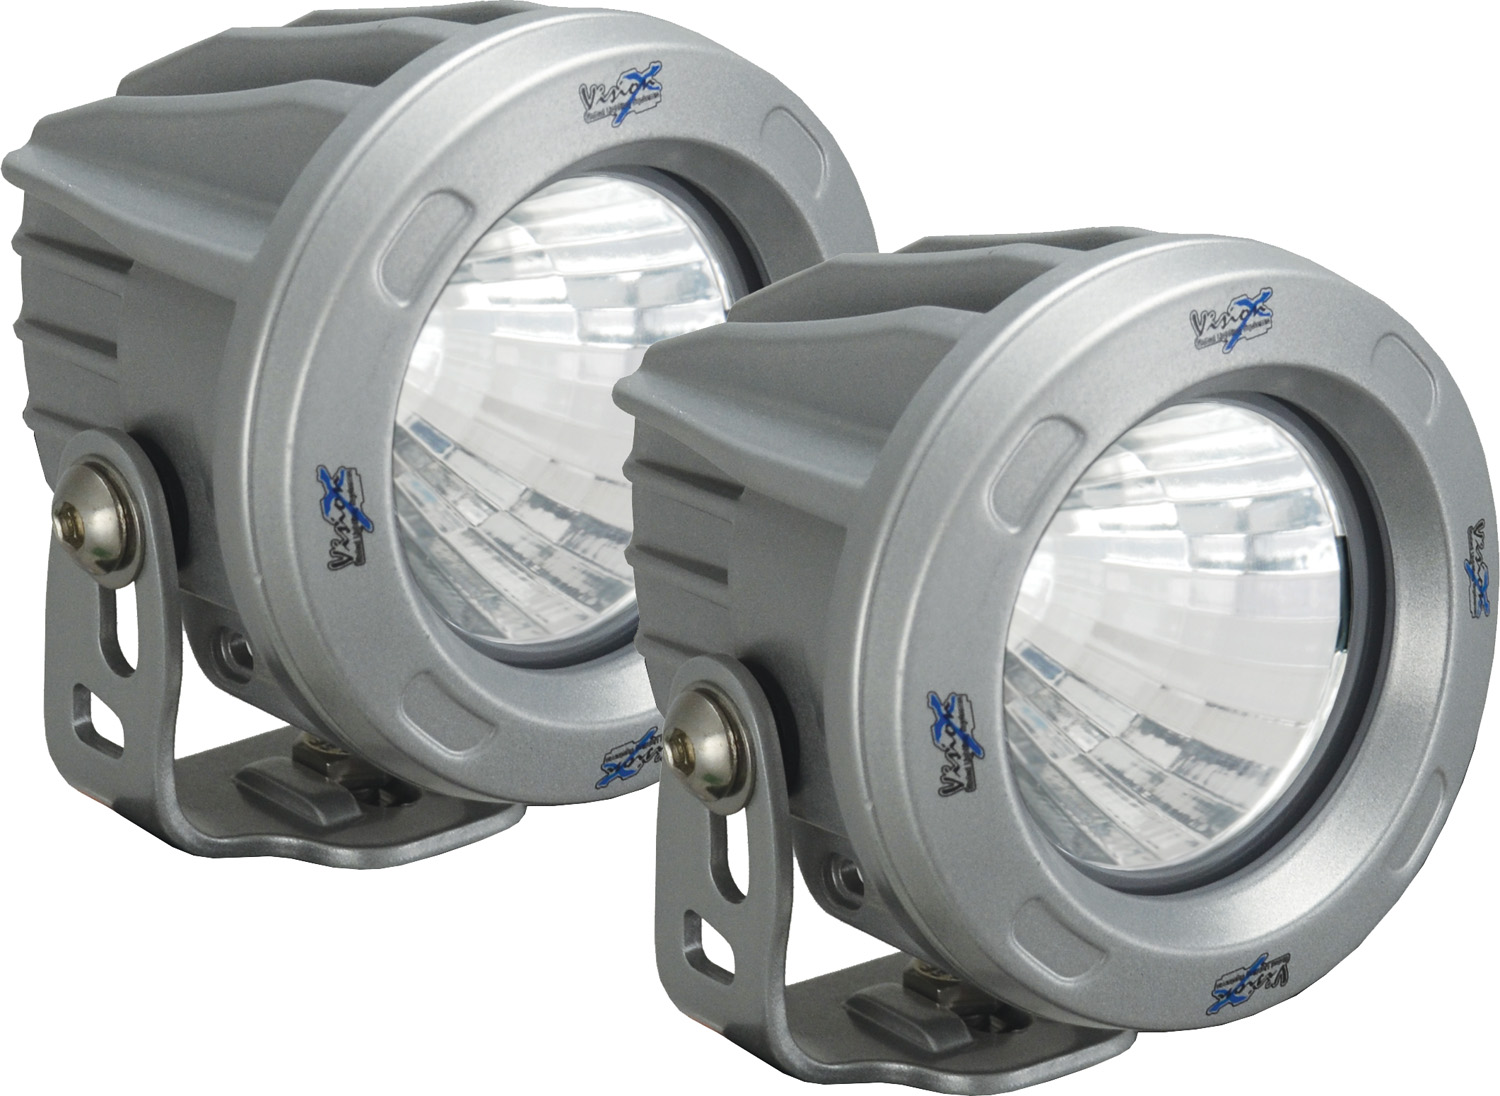 OPTIMUS ROUND SILVER 1 10W LED 10ç NARROW KIT OF 2 LIGHTS